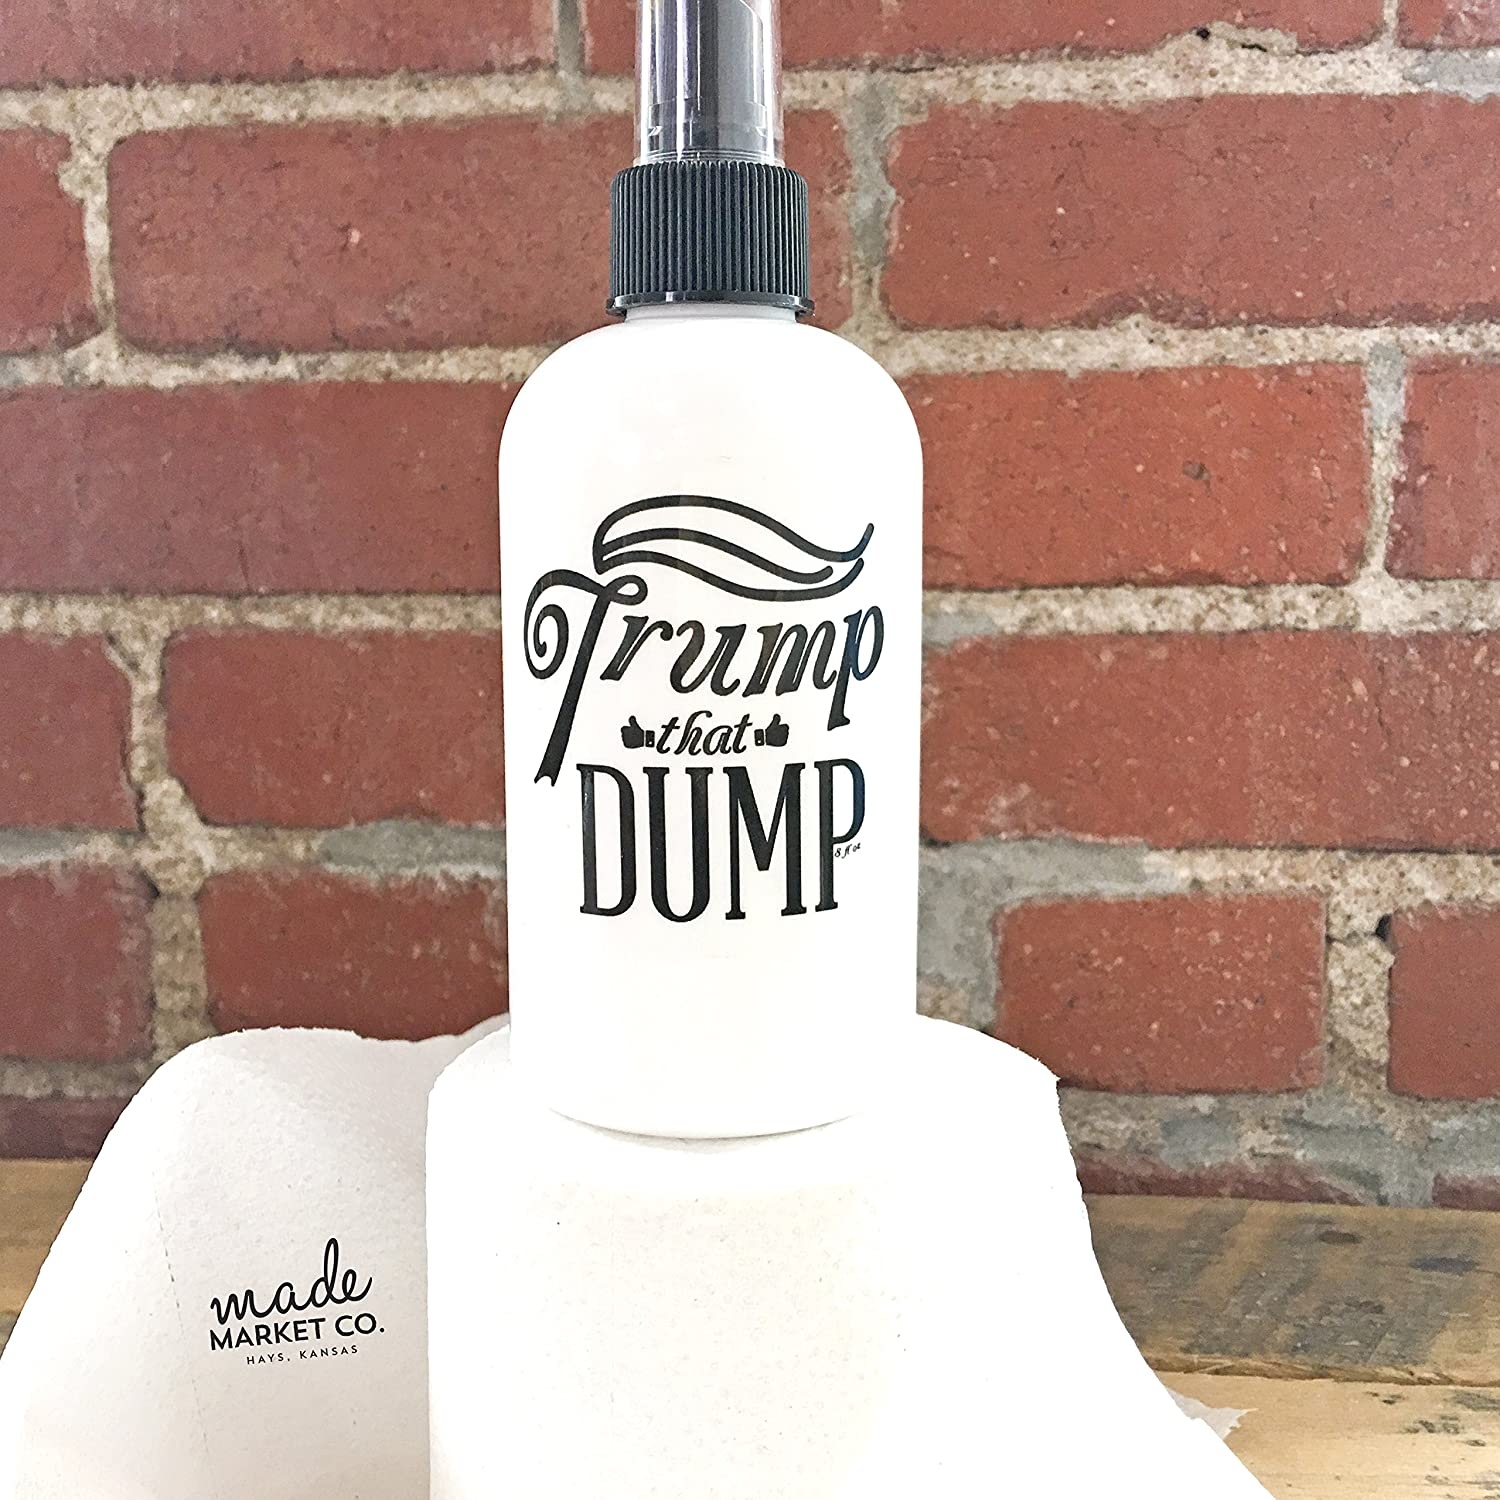 Trump That Dump Poop Spray | Bathroom Mist. Donald Trump. Gag Gift Office Party Christmas Funny Hilarious Man Cave Gift. Clean Scent.